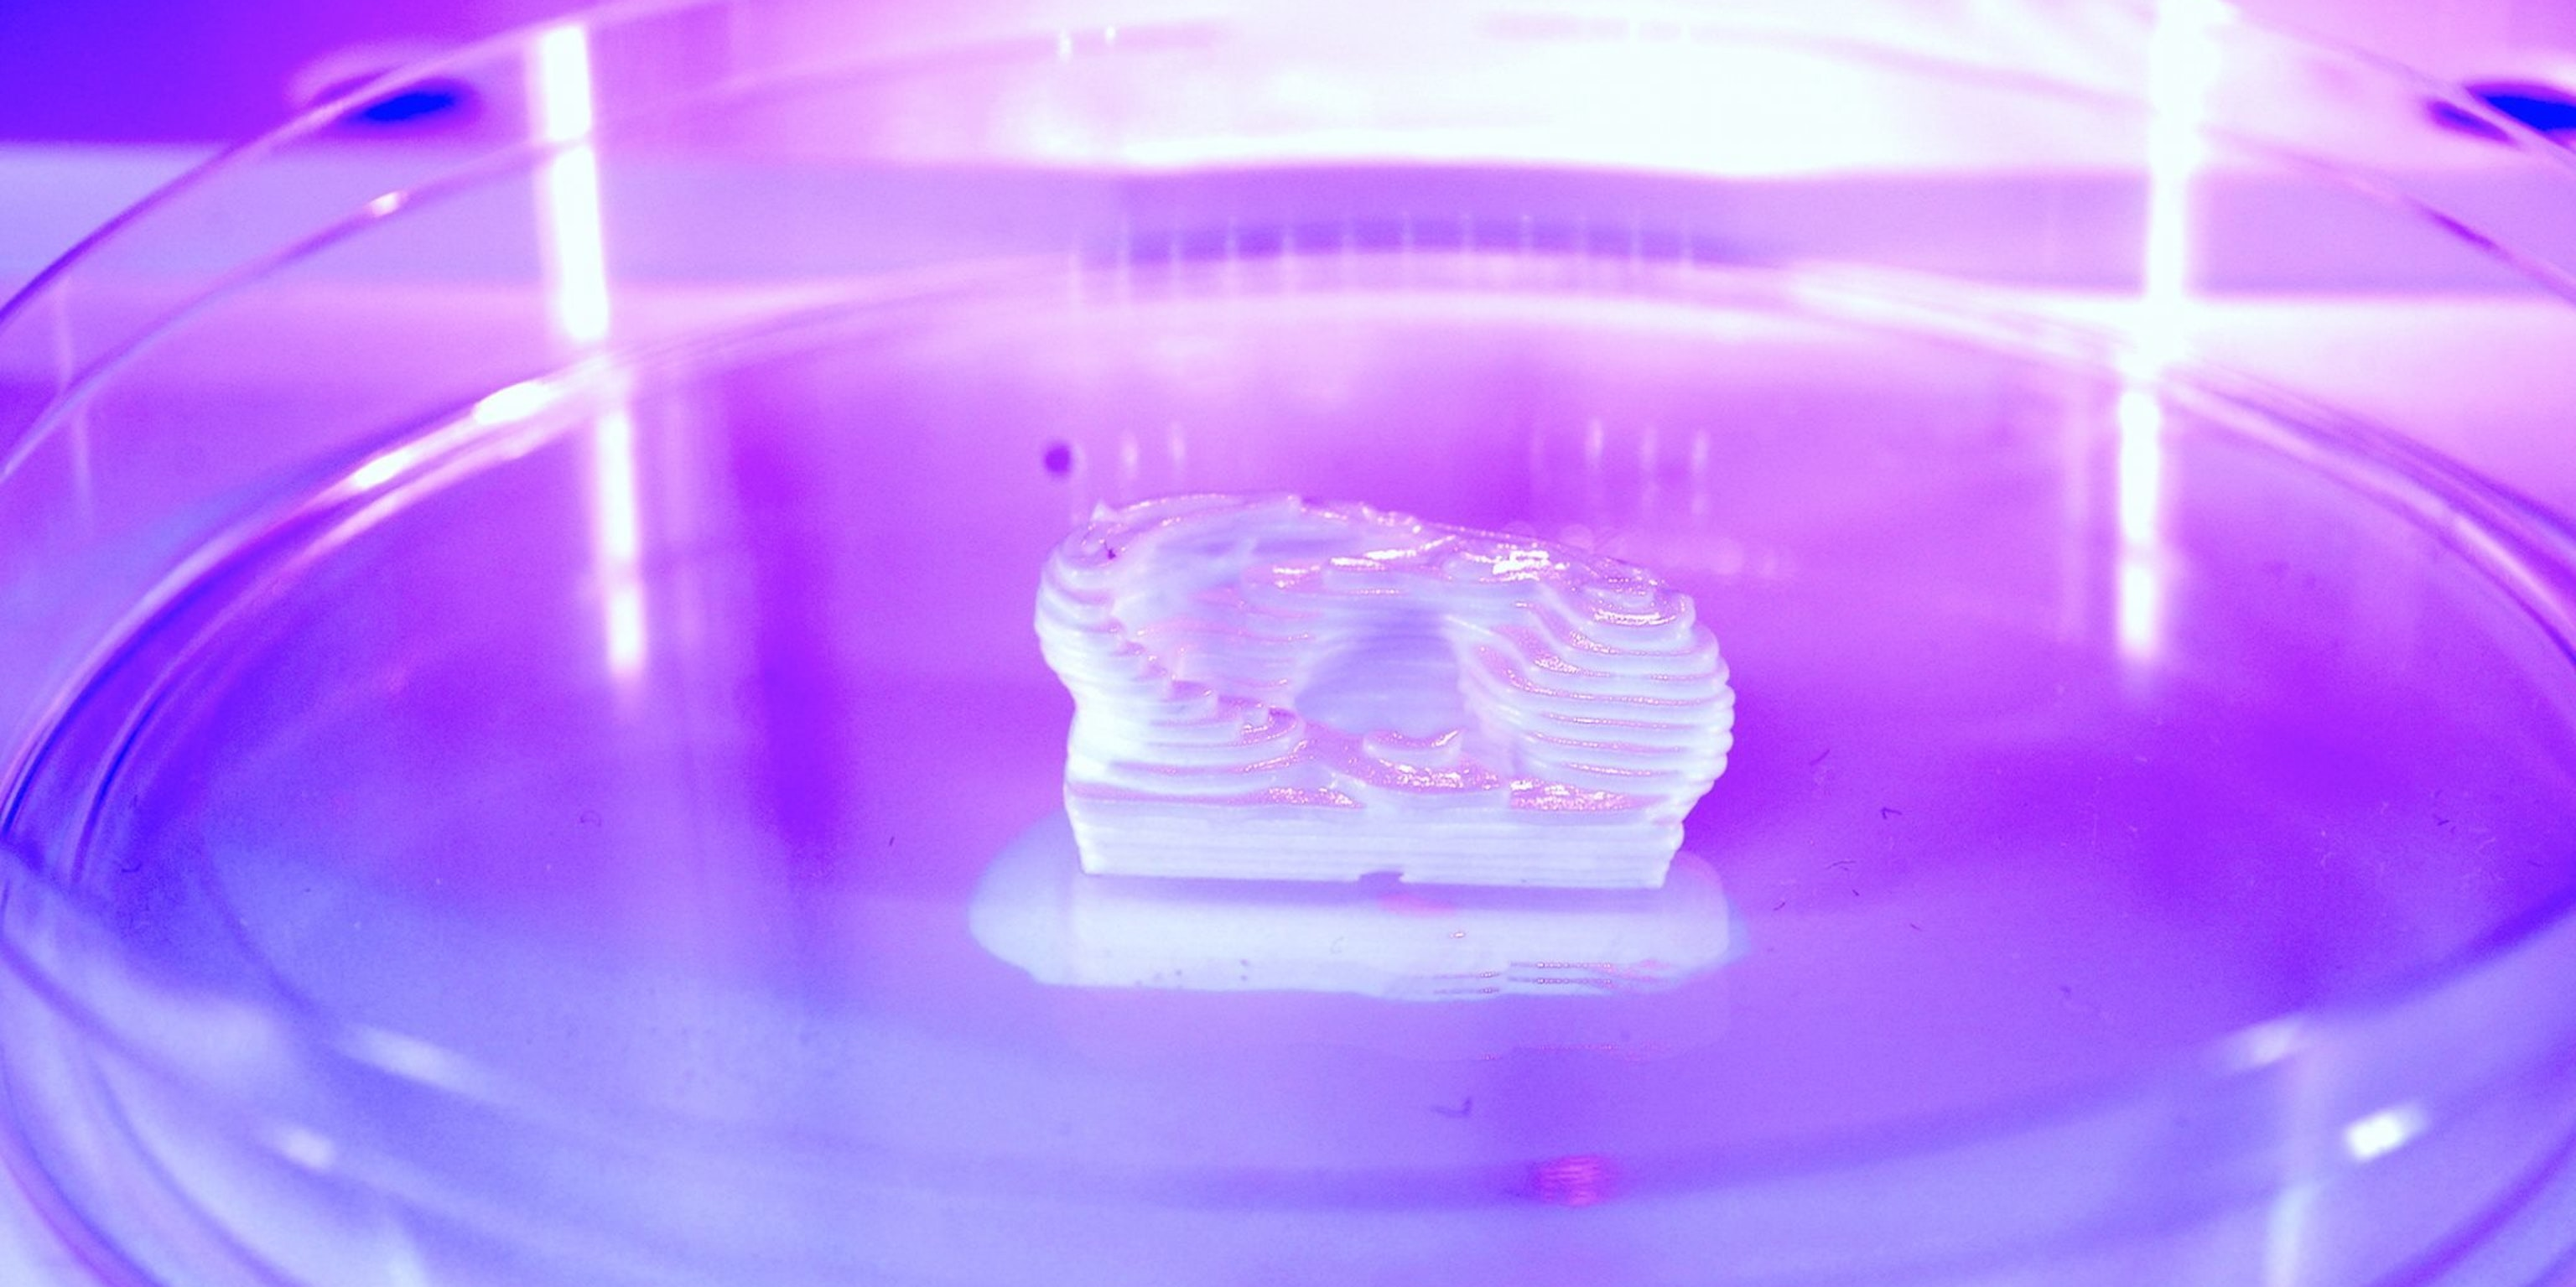 CELLINK Wants to Make 3D-Printed Human Organs Big Business (and They're Not Crazy)